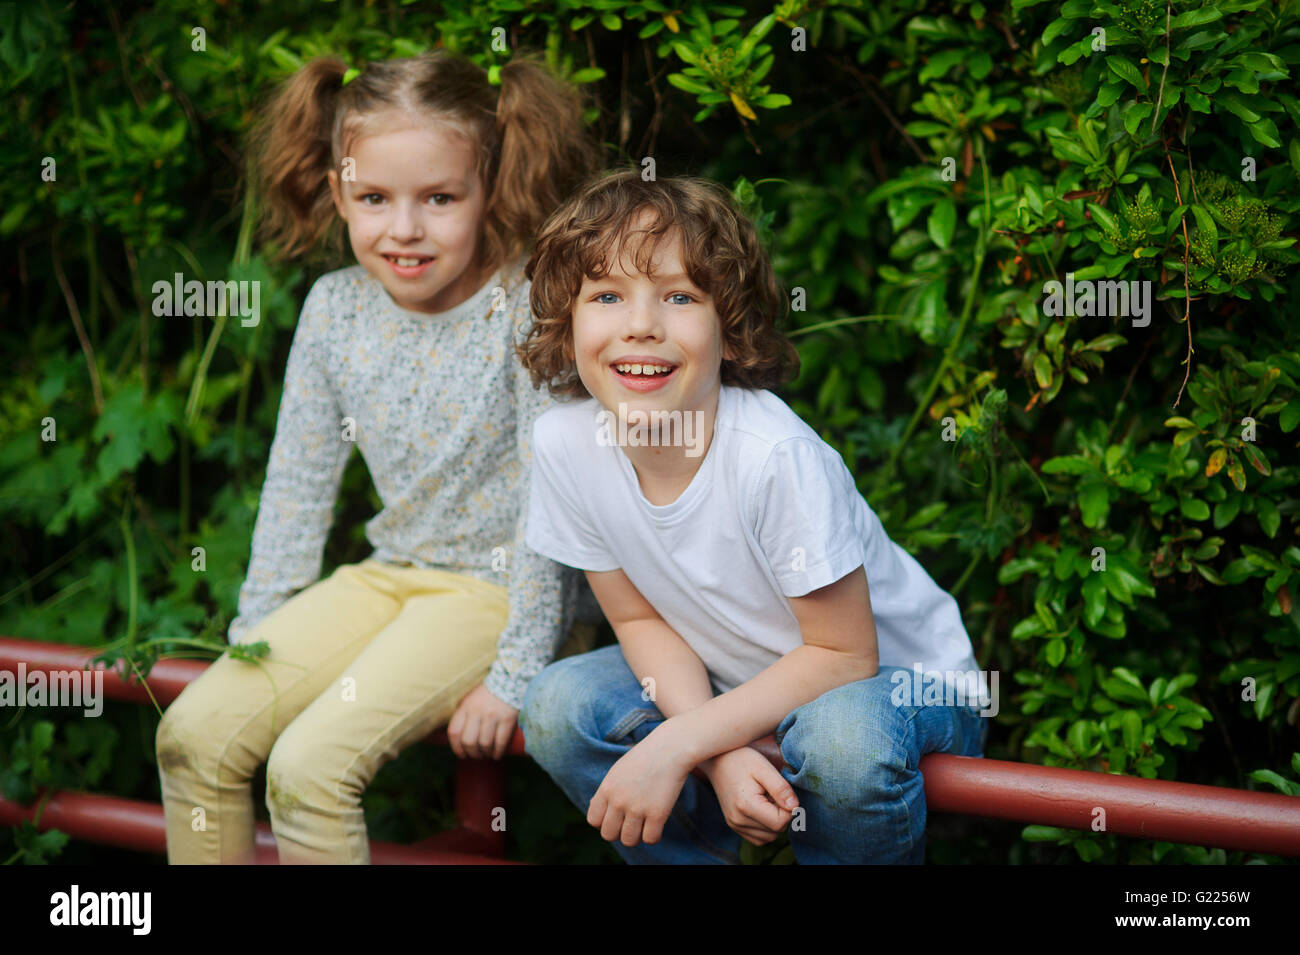 Girl with boy sit on the fence in the park and laughing - Stock Image